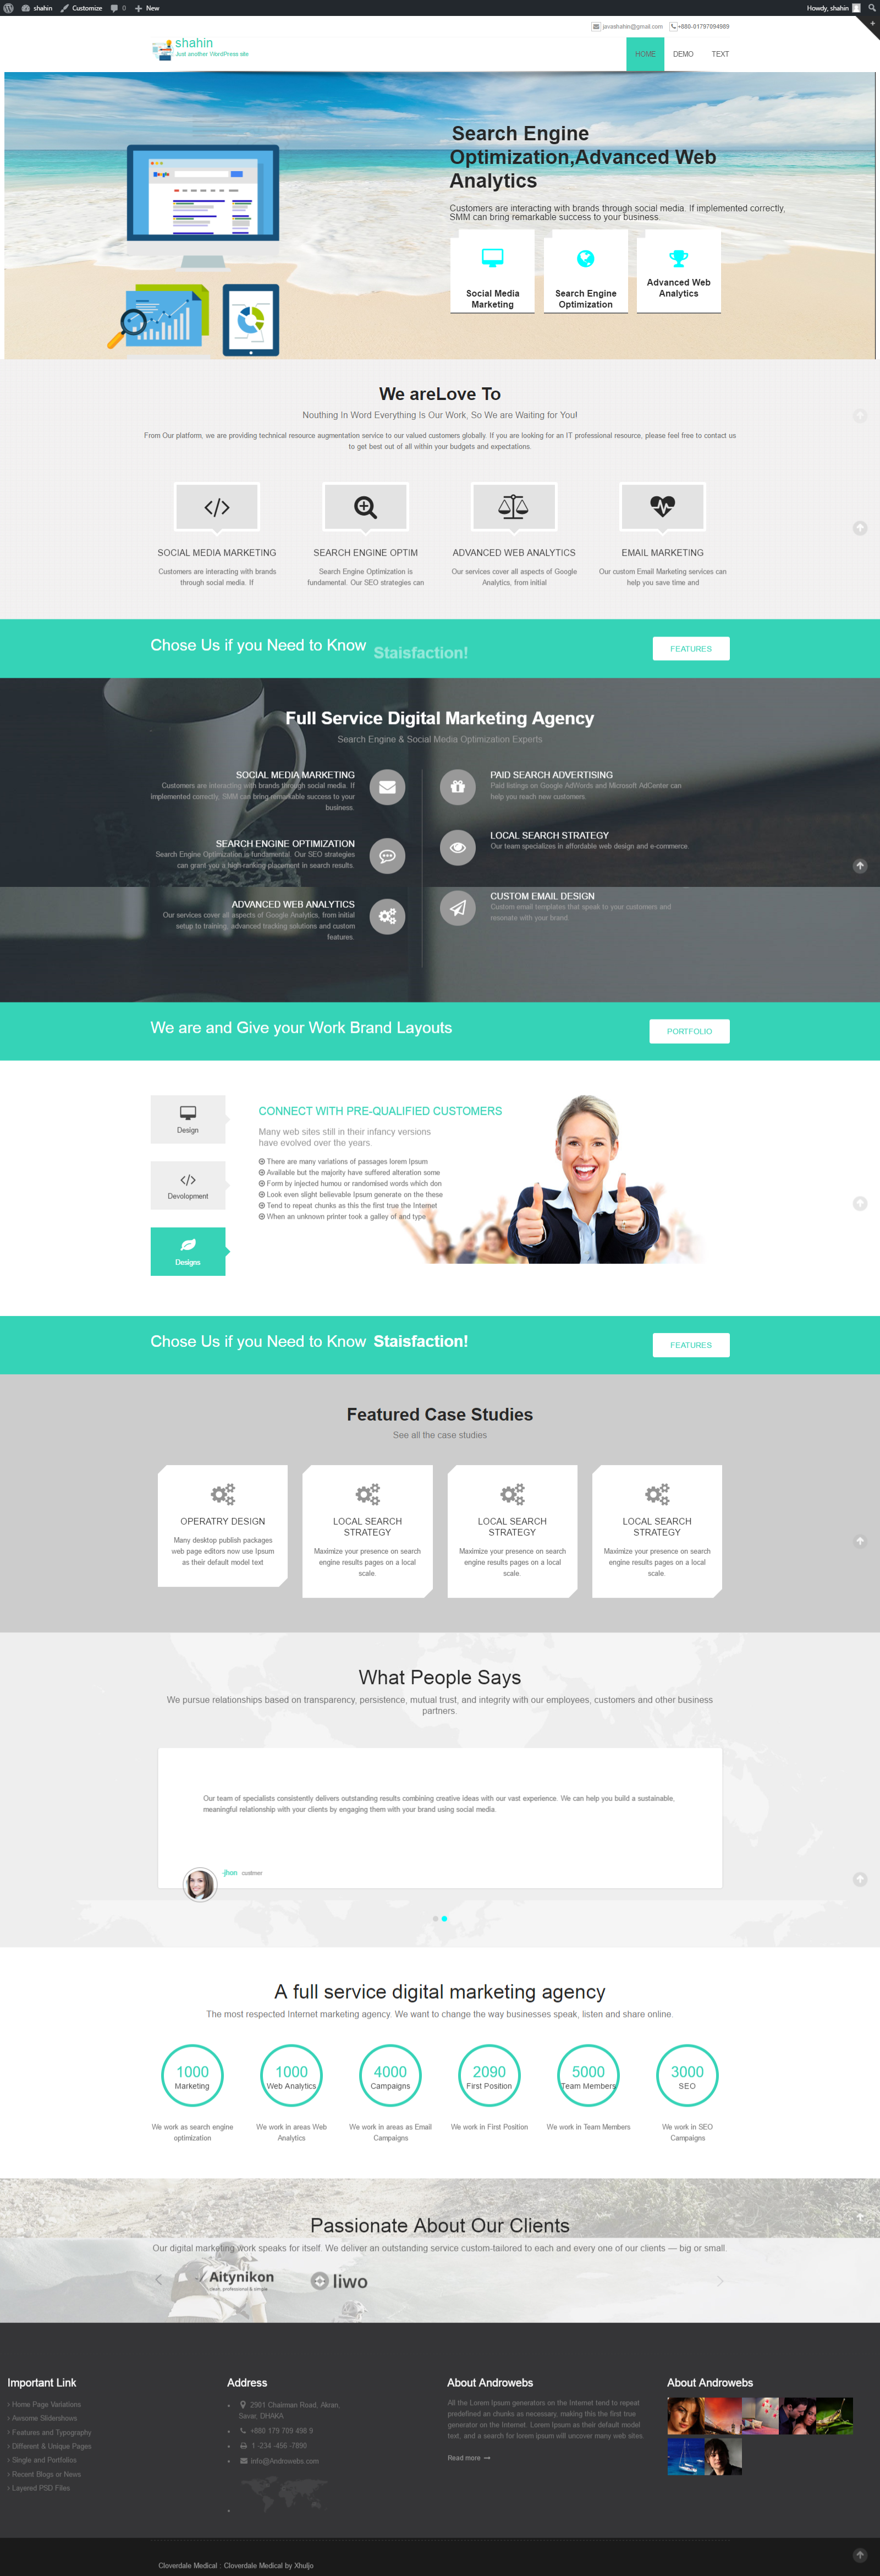 Seo Agency Wordpress Theme full responsive